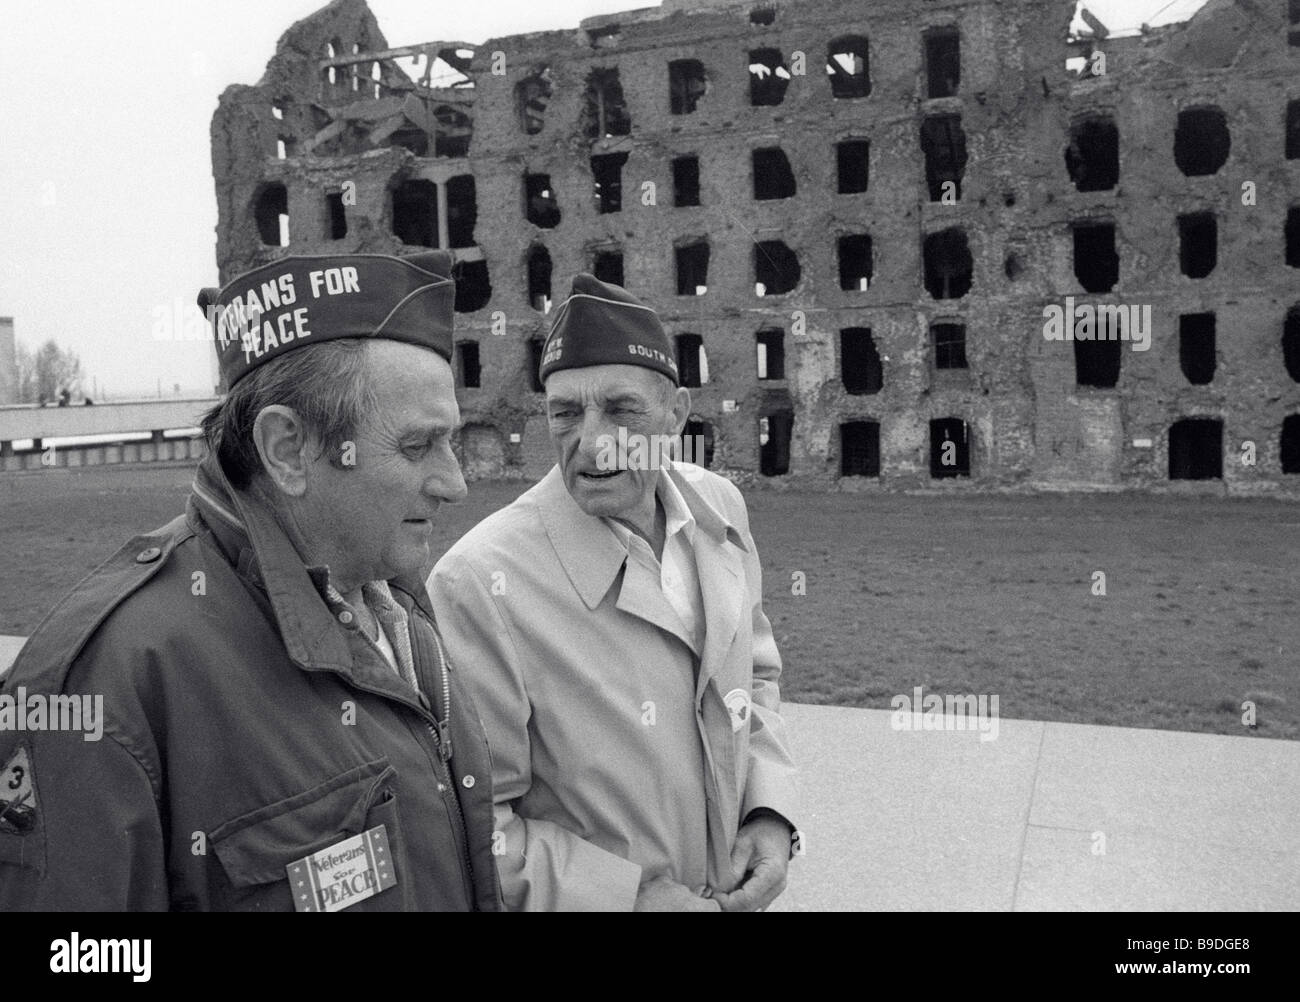 U S veterans of WWII Charles Forster right and Lumir Sabrt left talk near a ruined mill - Stock Image